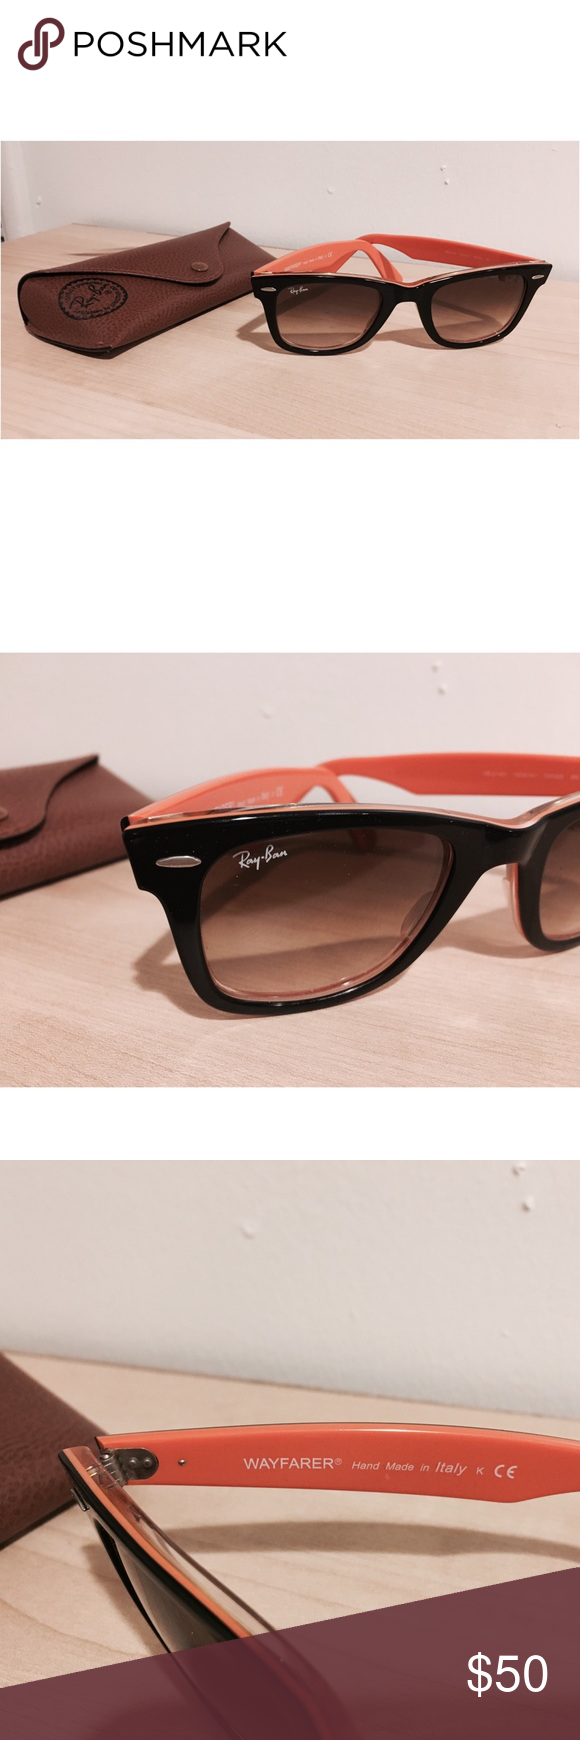 Ray Ban Wayfarer Black Orange Sunglasses Rb2140 Ray Ban Wayfarer Black Orange Sunglasses Sunglasses